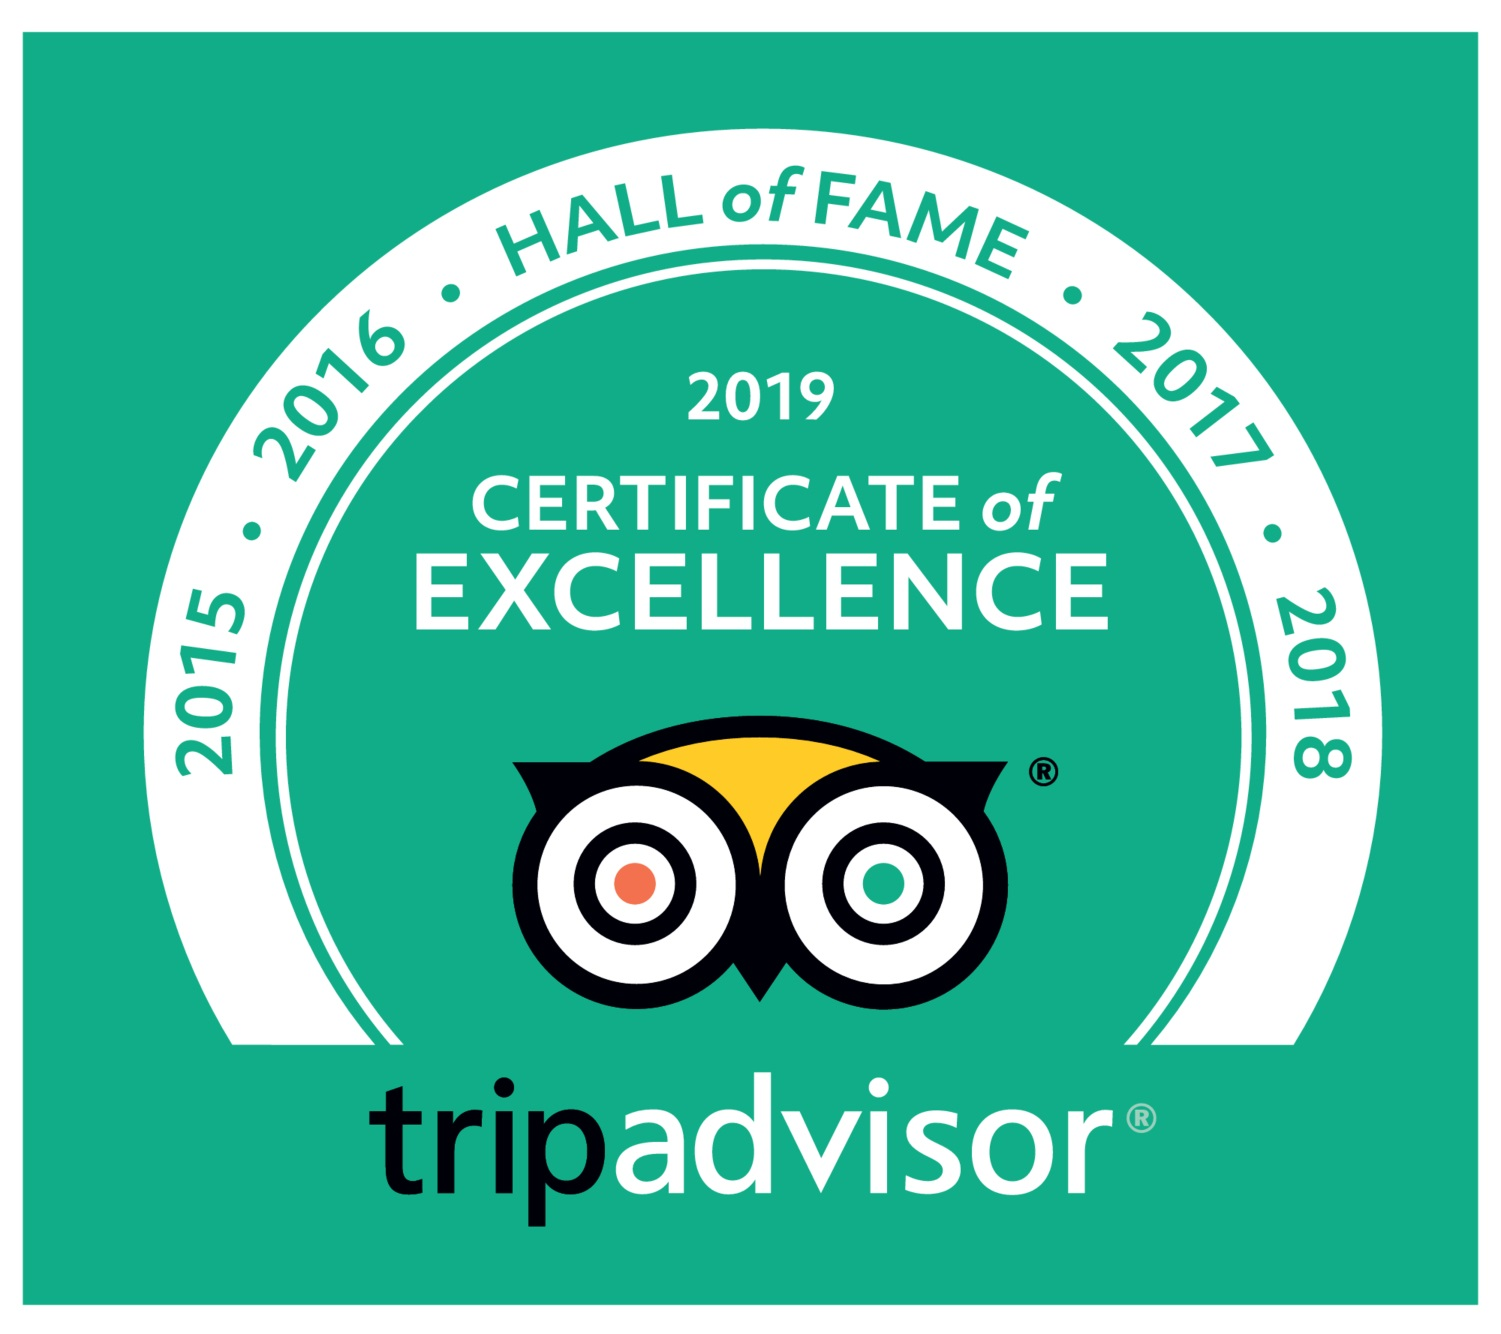 J3 Private Tours Hong Kong | Certificate of Excellence | 8 years in a row 2012 - 2019   -